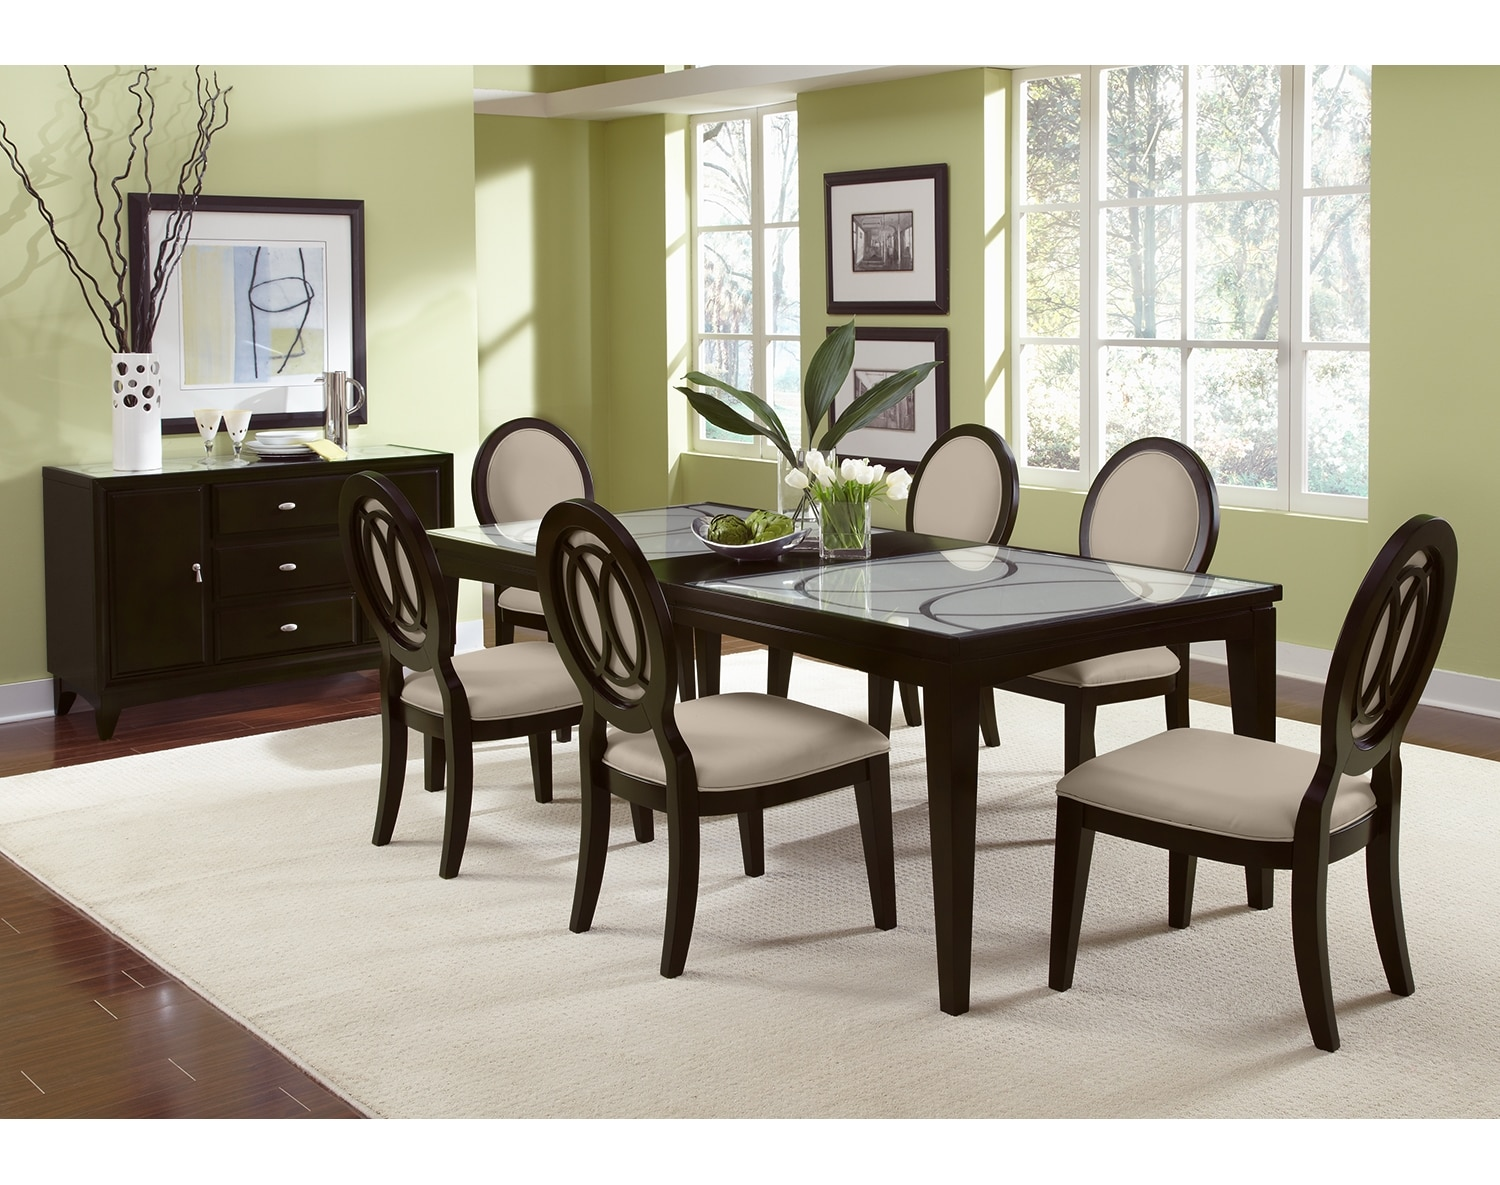 The Cosmo Dining Collection